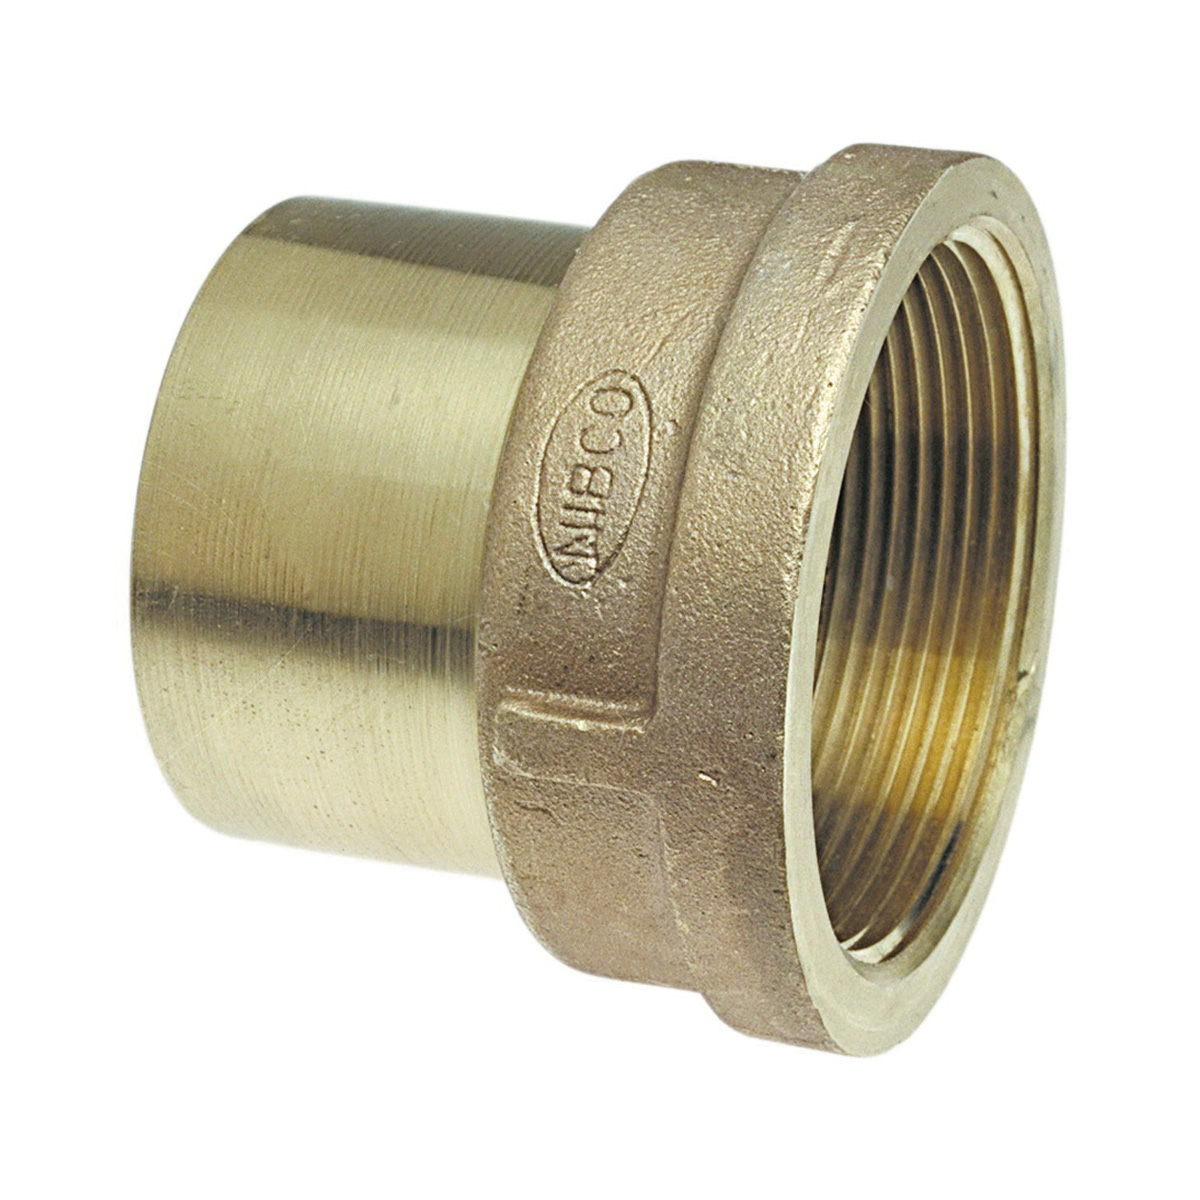 NIBCO® B028650 703-2R Adapter, 3/4 x 1/2 in, Fitting x FNPT, Bronze, Domestic